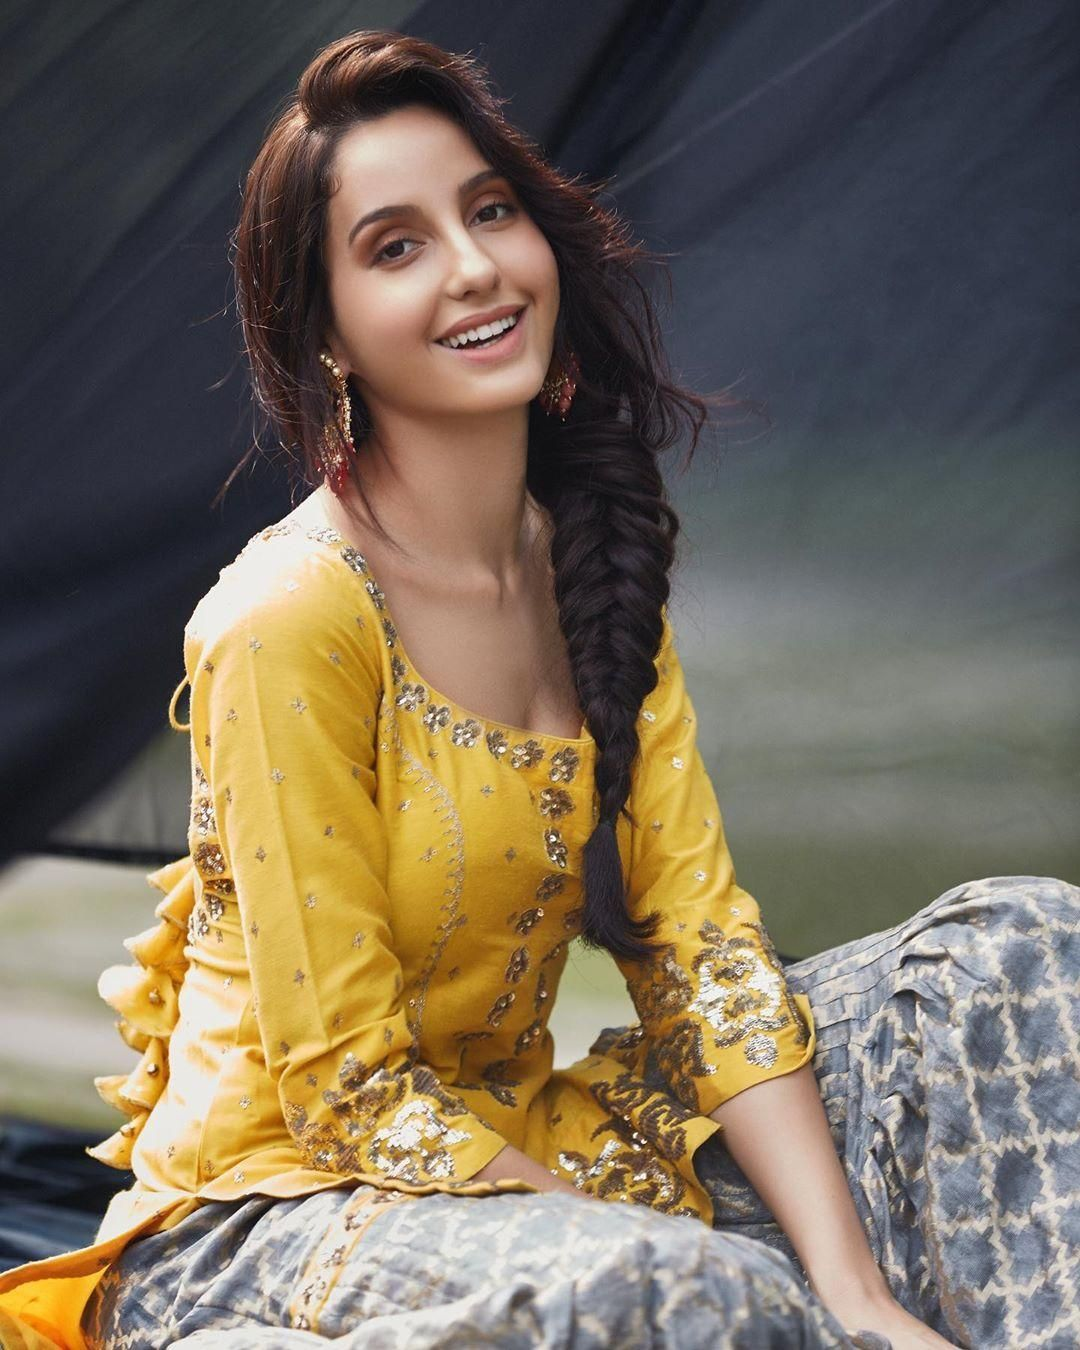 100 Nora Fatehi Latest Hot Hd Photos Amp Mobile Wallpapers 1080p 2020